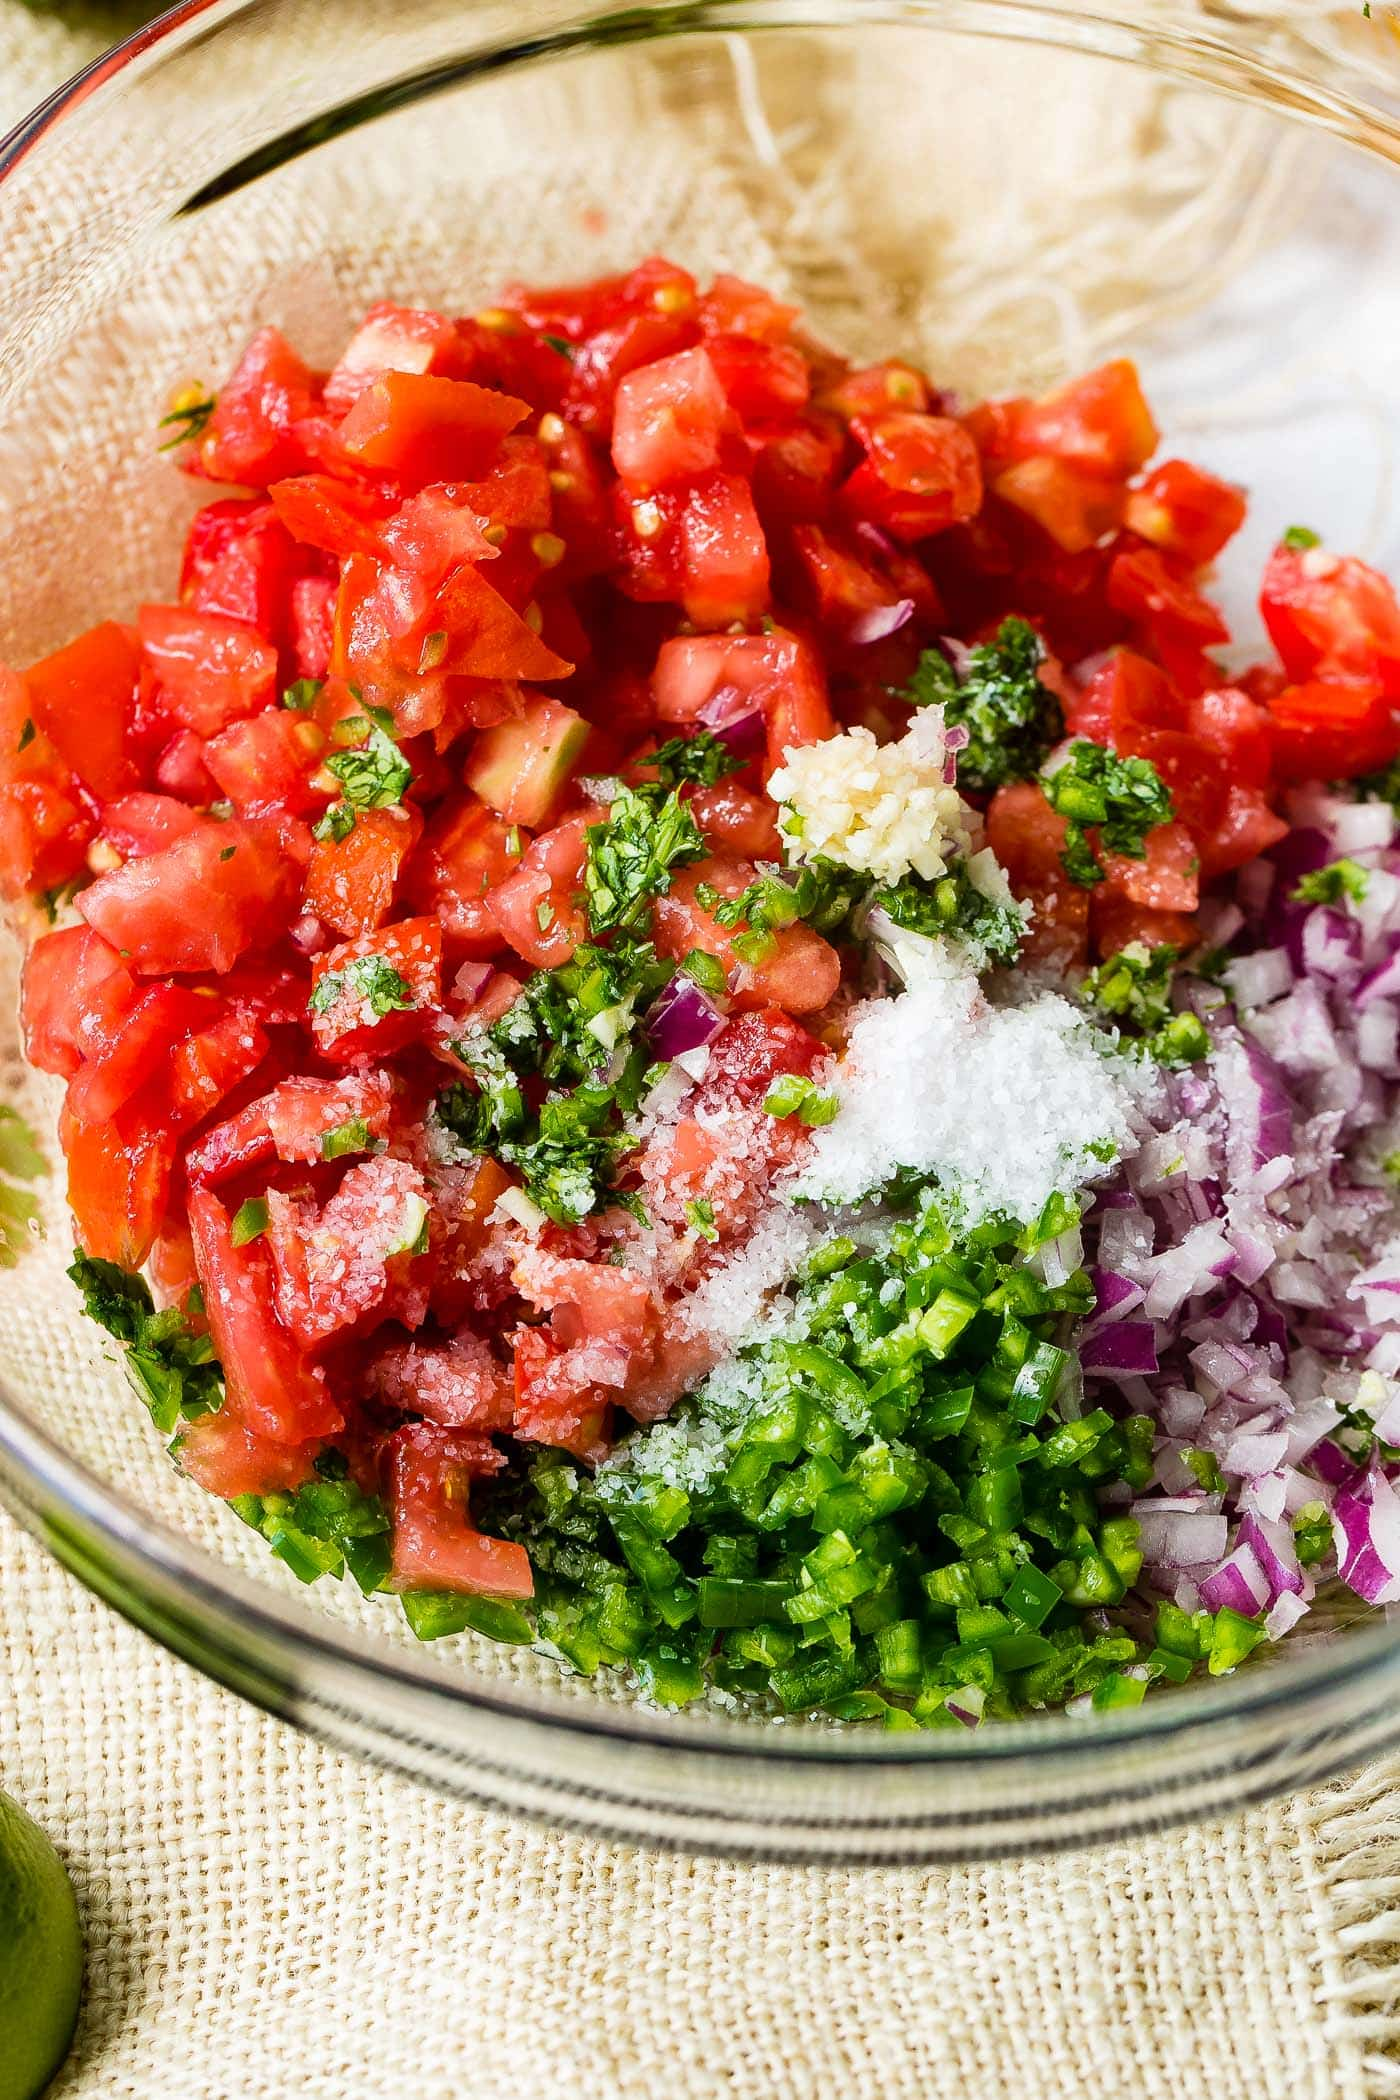 A glass bowl full of all the ingredients for pico de gallo that haven't been stirred together yet.